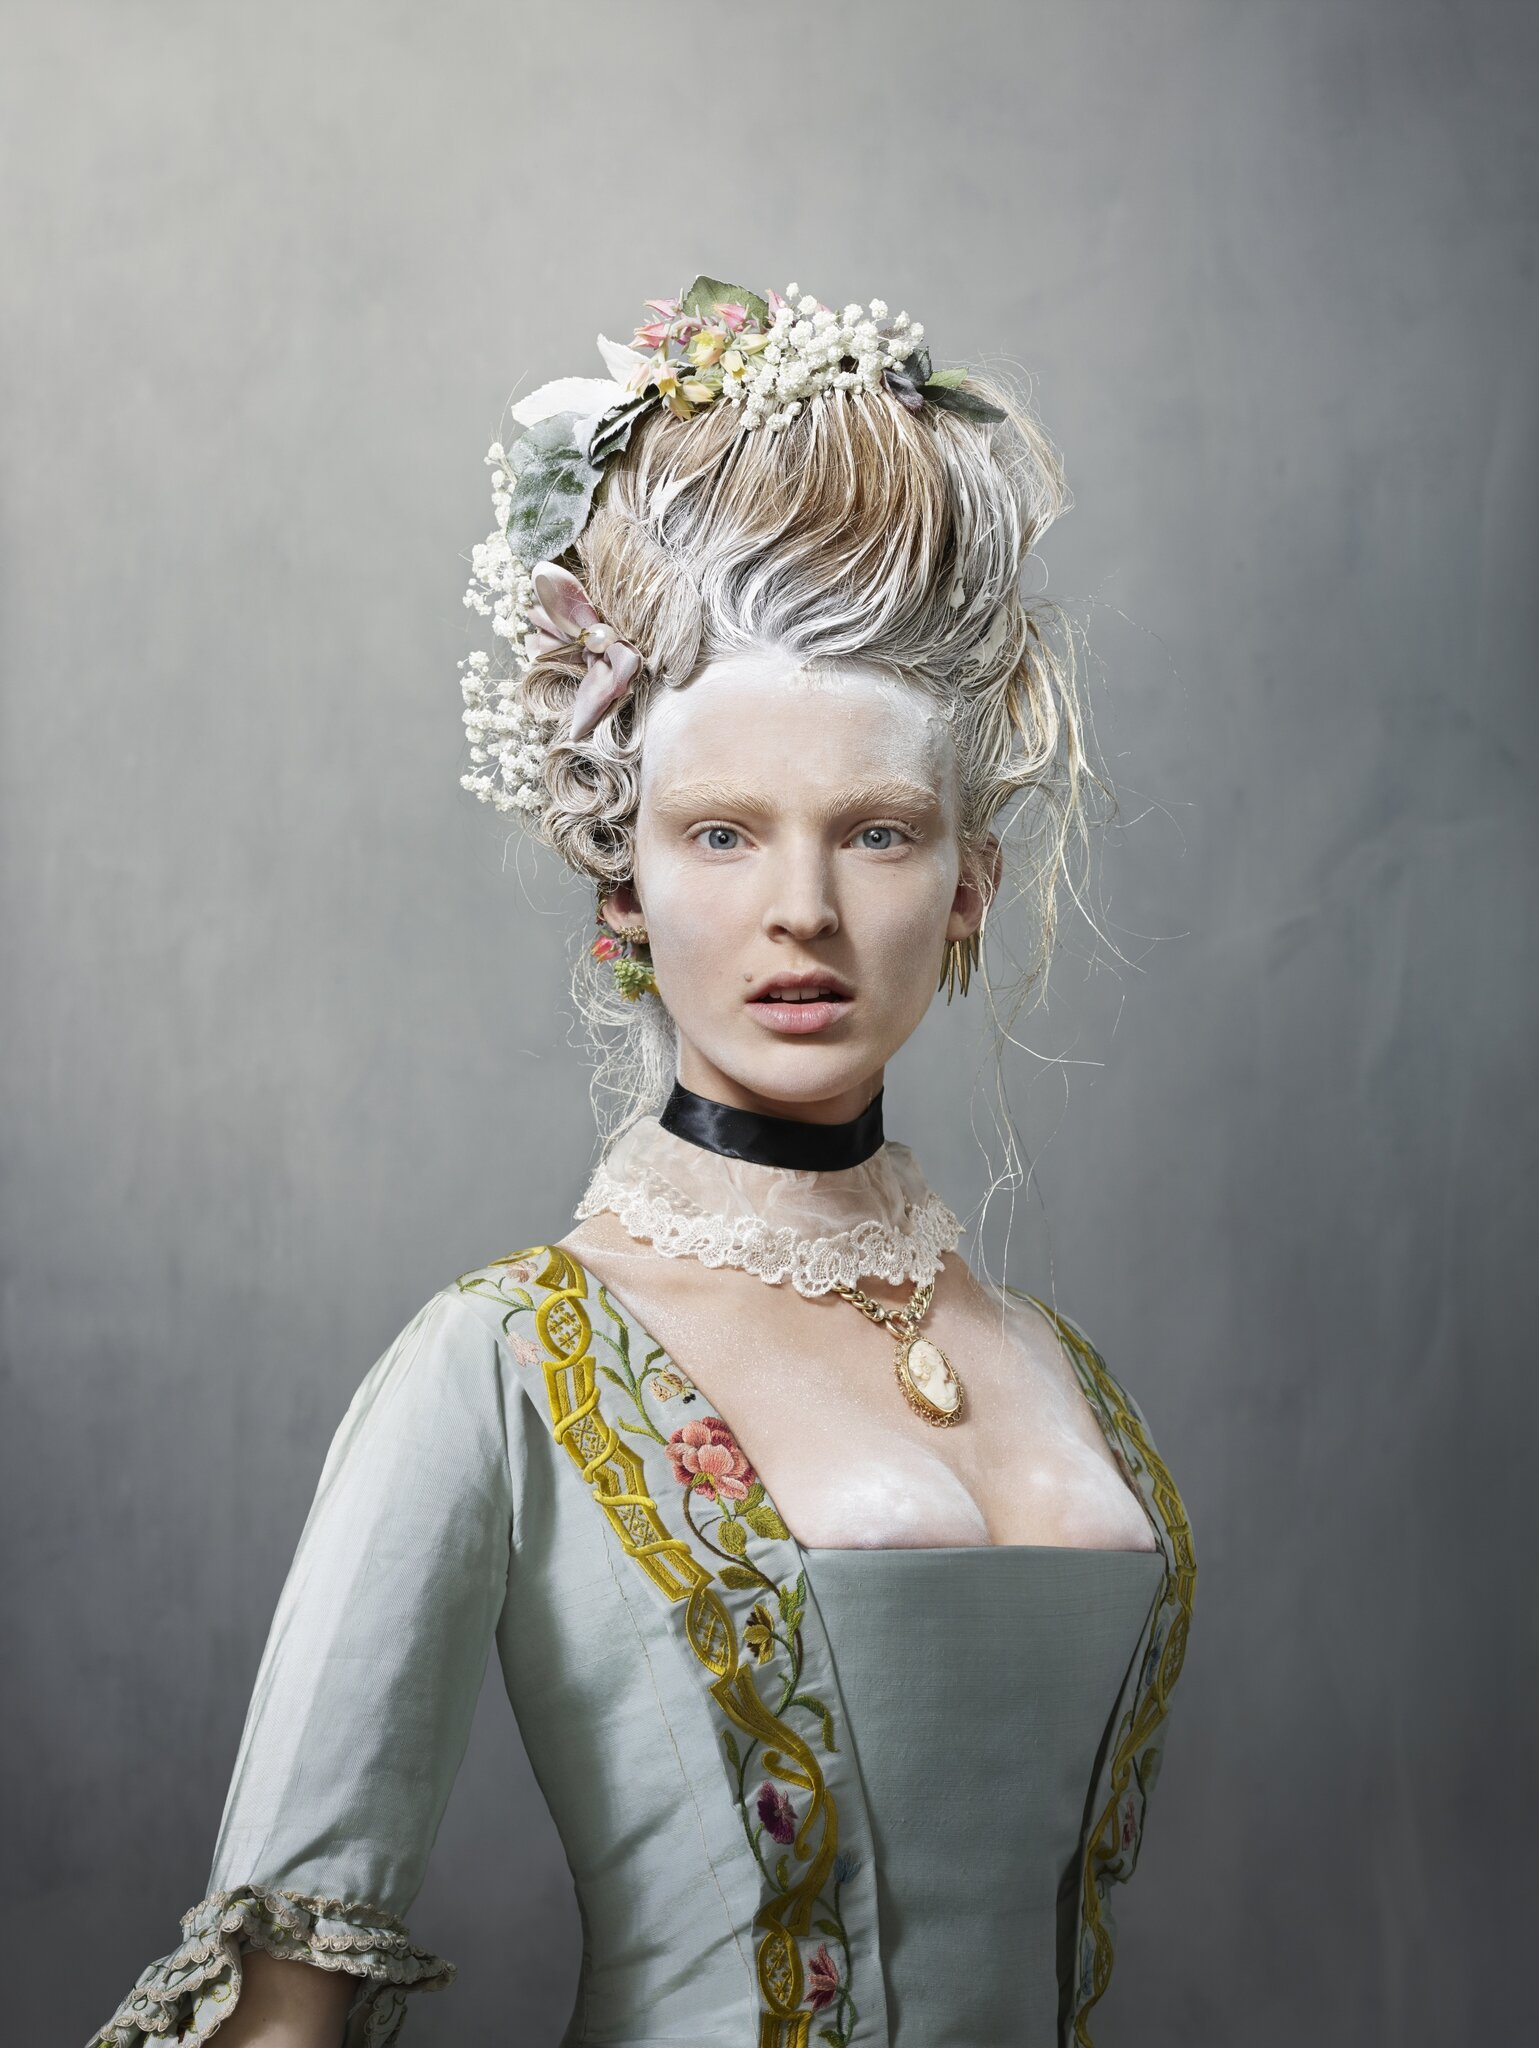 For the first time the Rijksmuseum presents a large selection of its fashion collection designed by world-renowned Erwin Olaf